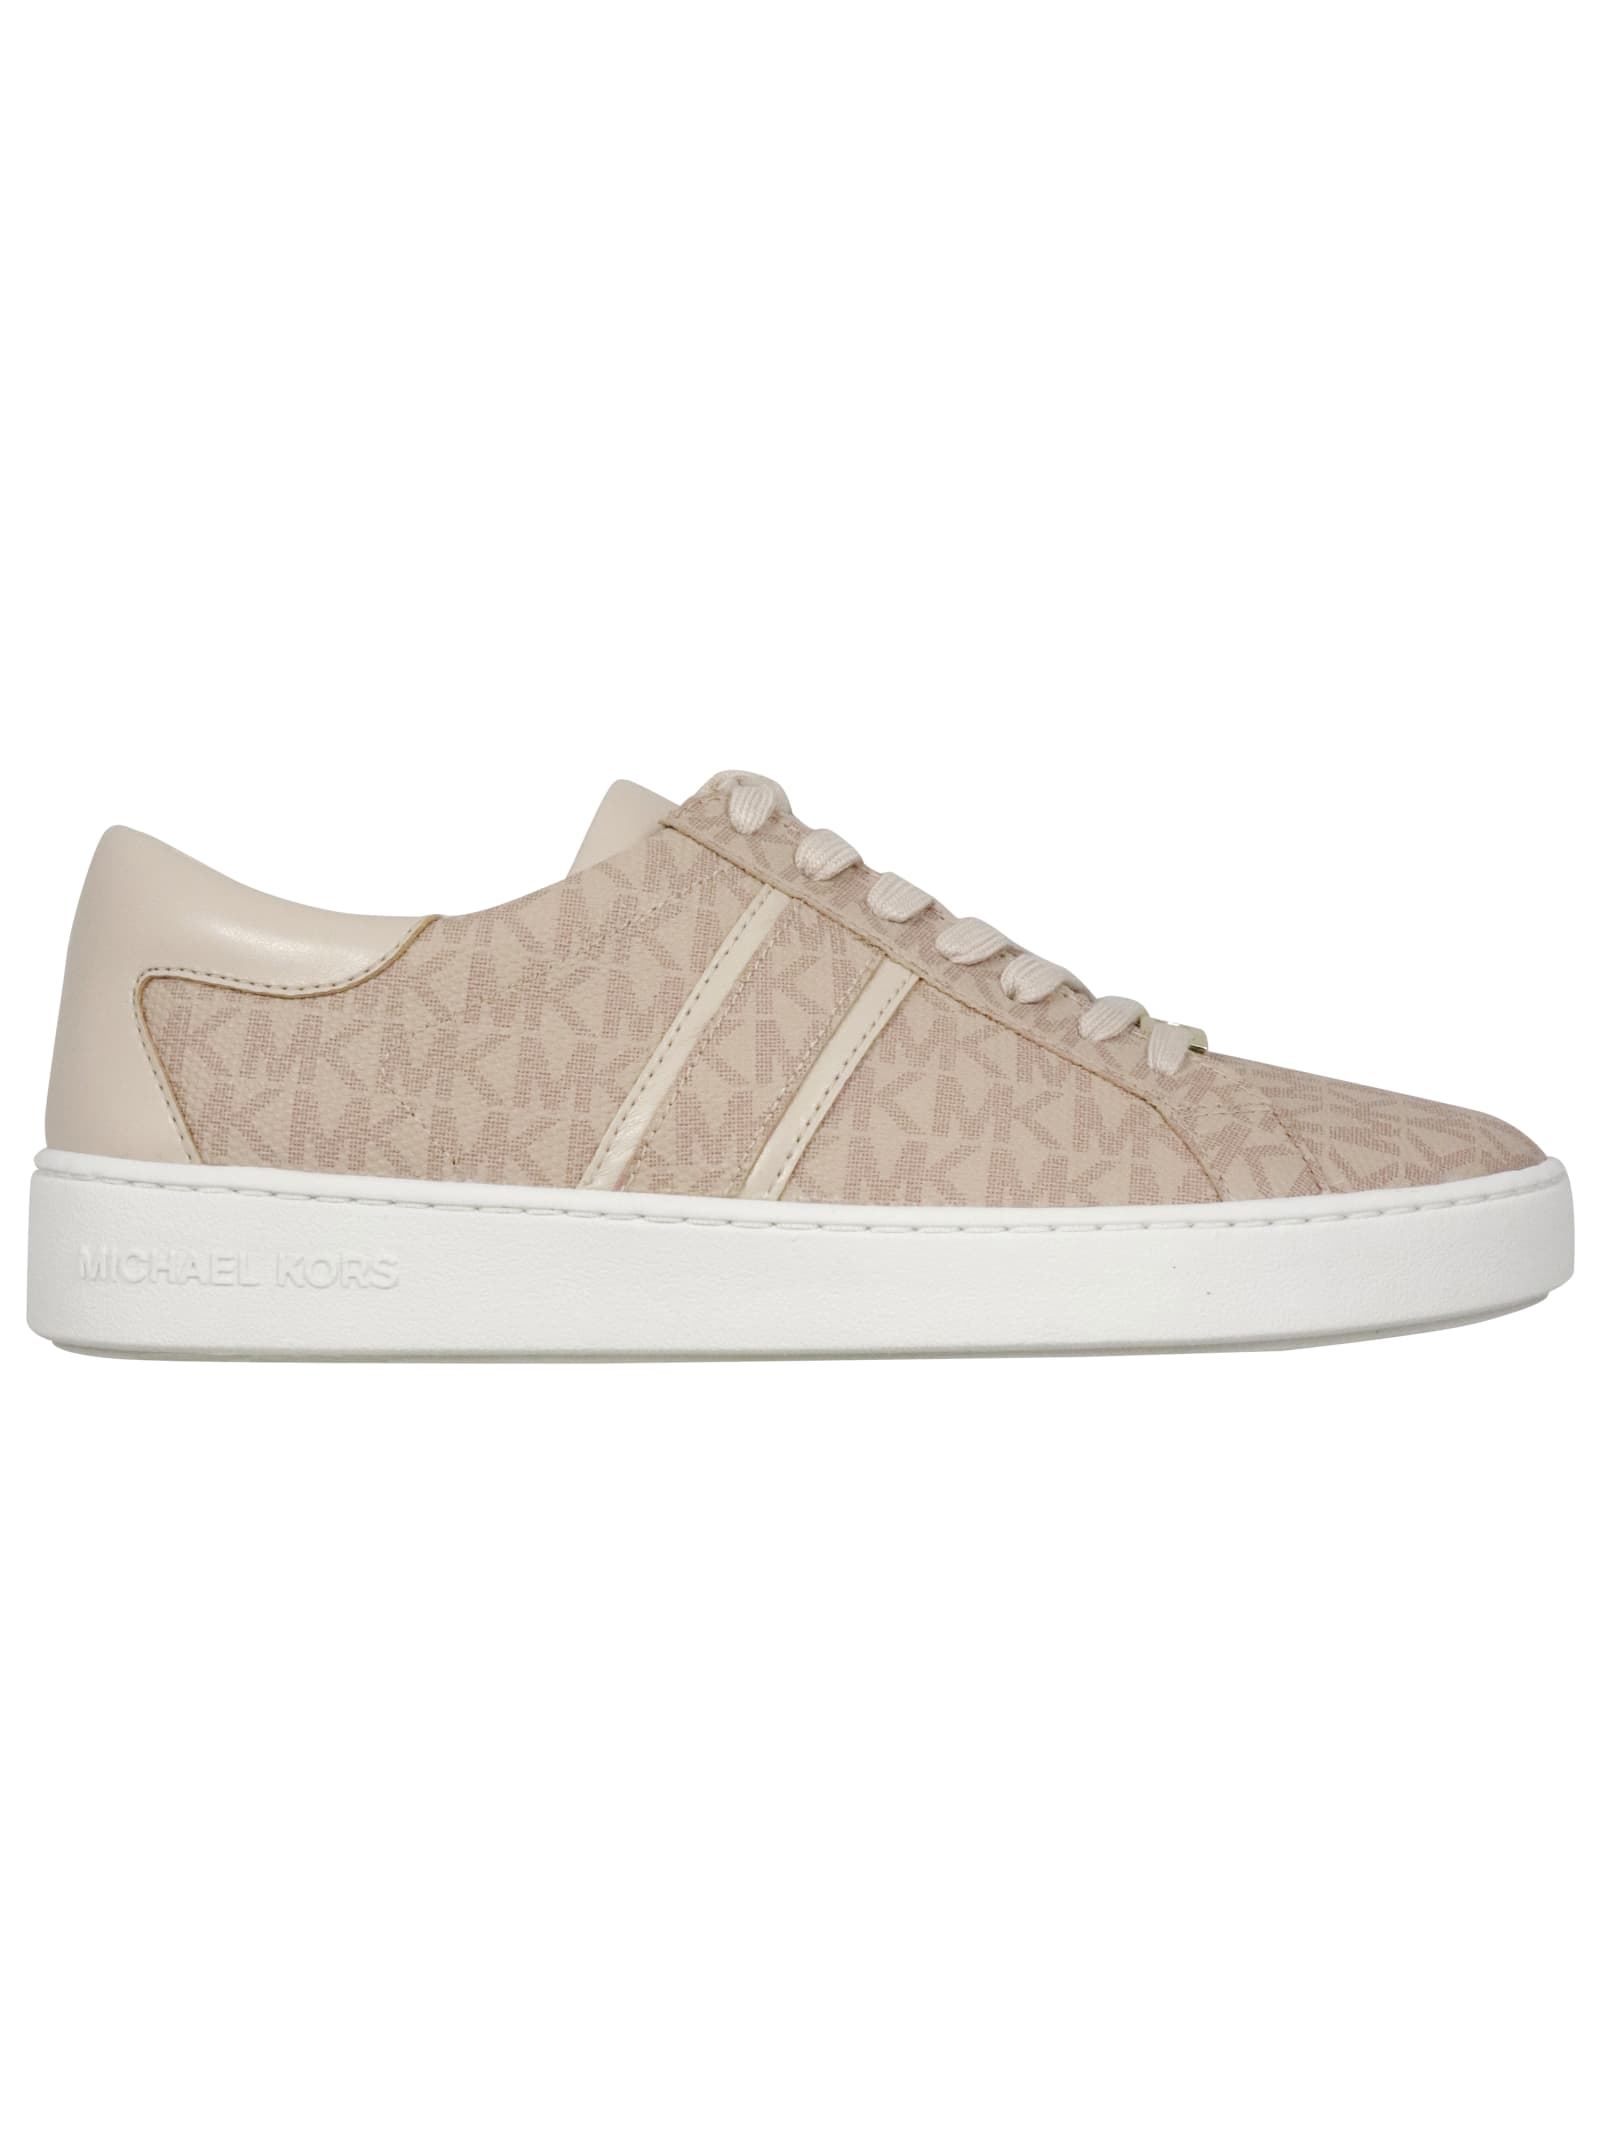 Michael Kors KEATON STRIPE LACE UP SNEAKER